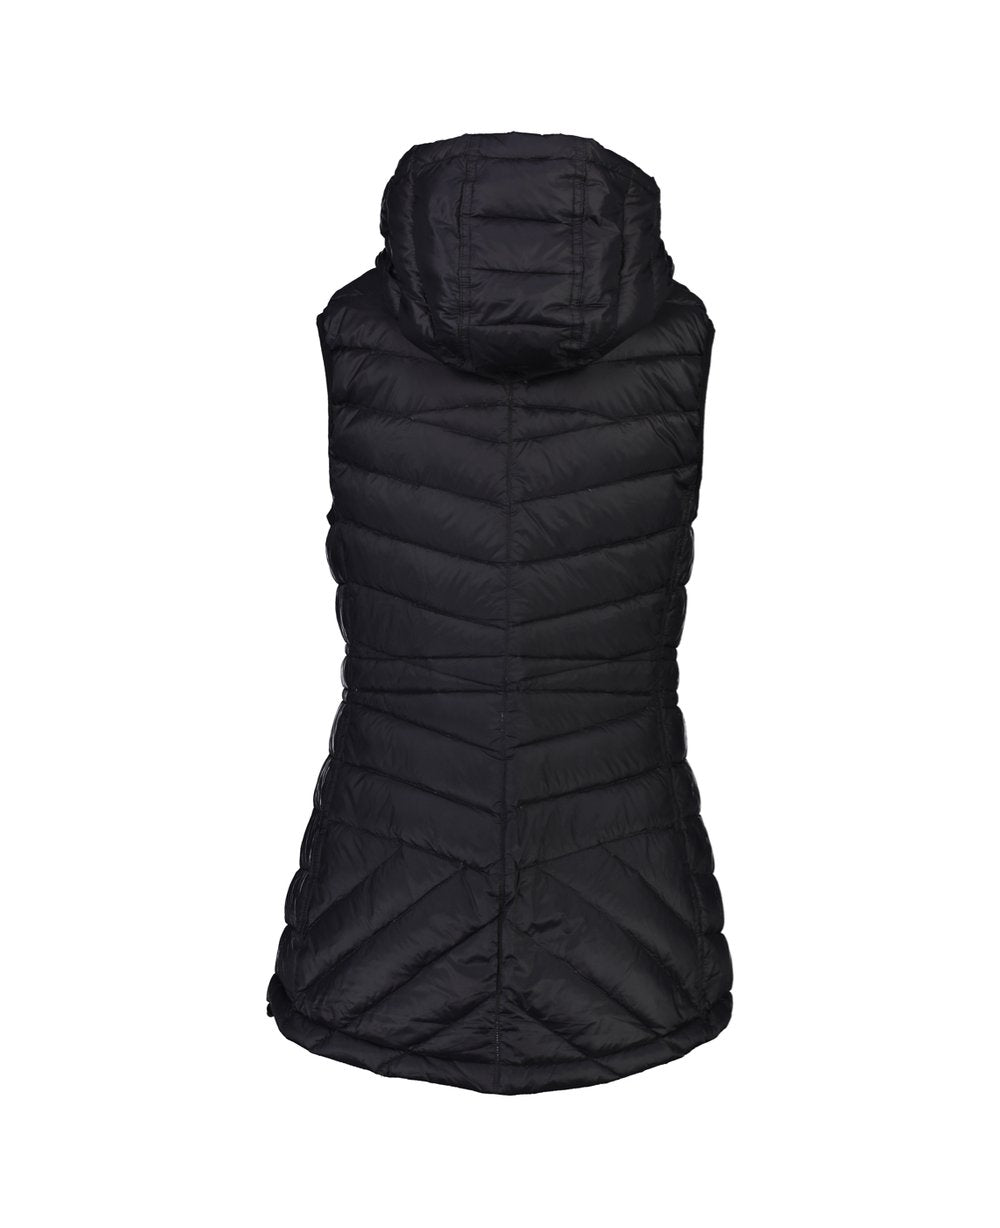 Moke Mary Claire Vest